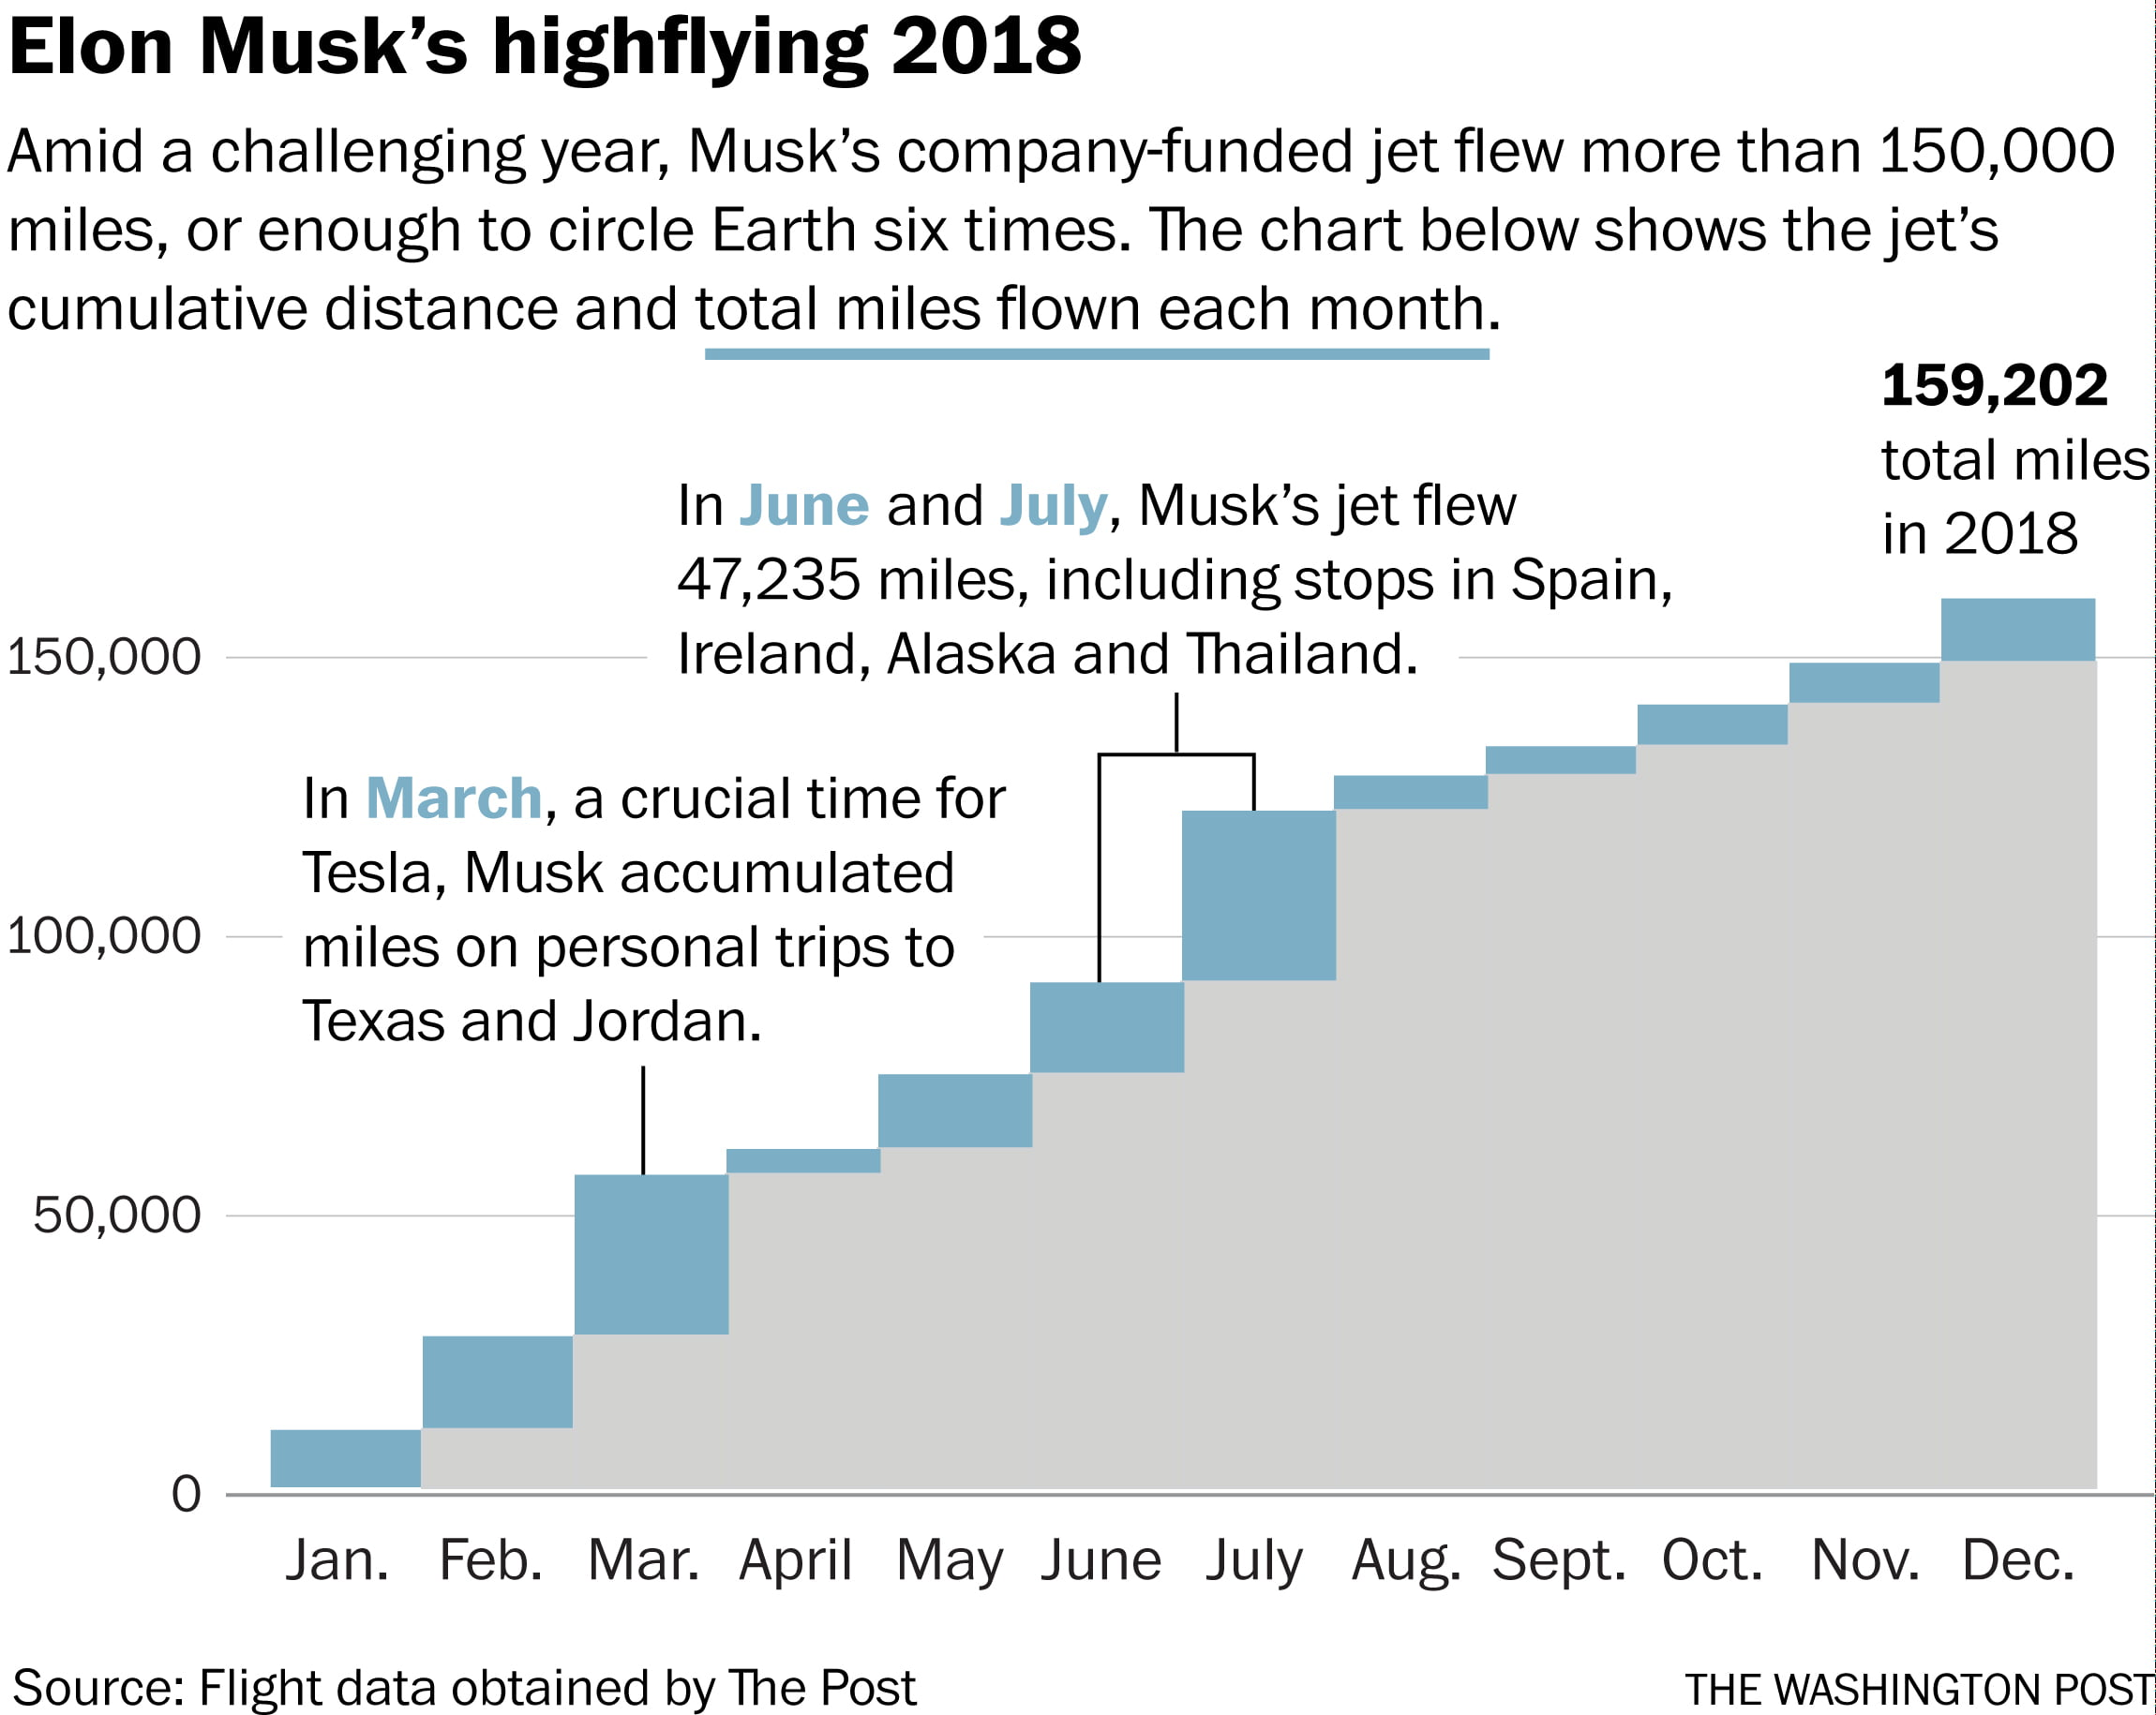 This is Elon Musk's busy schedule